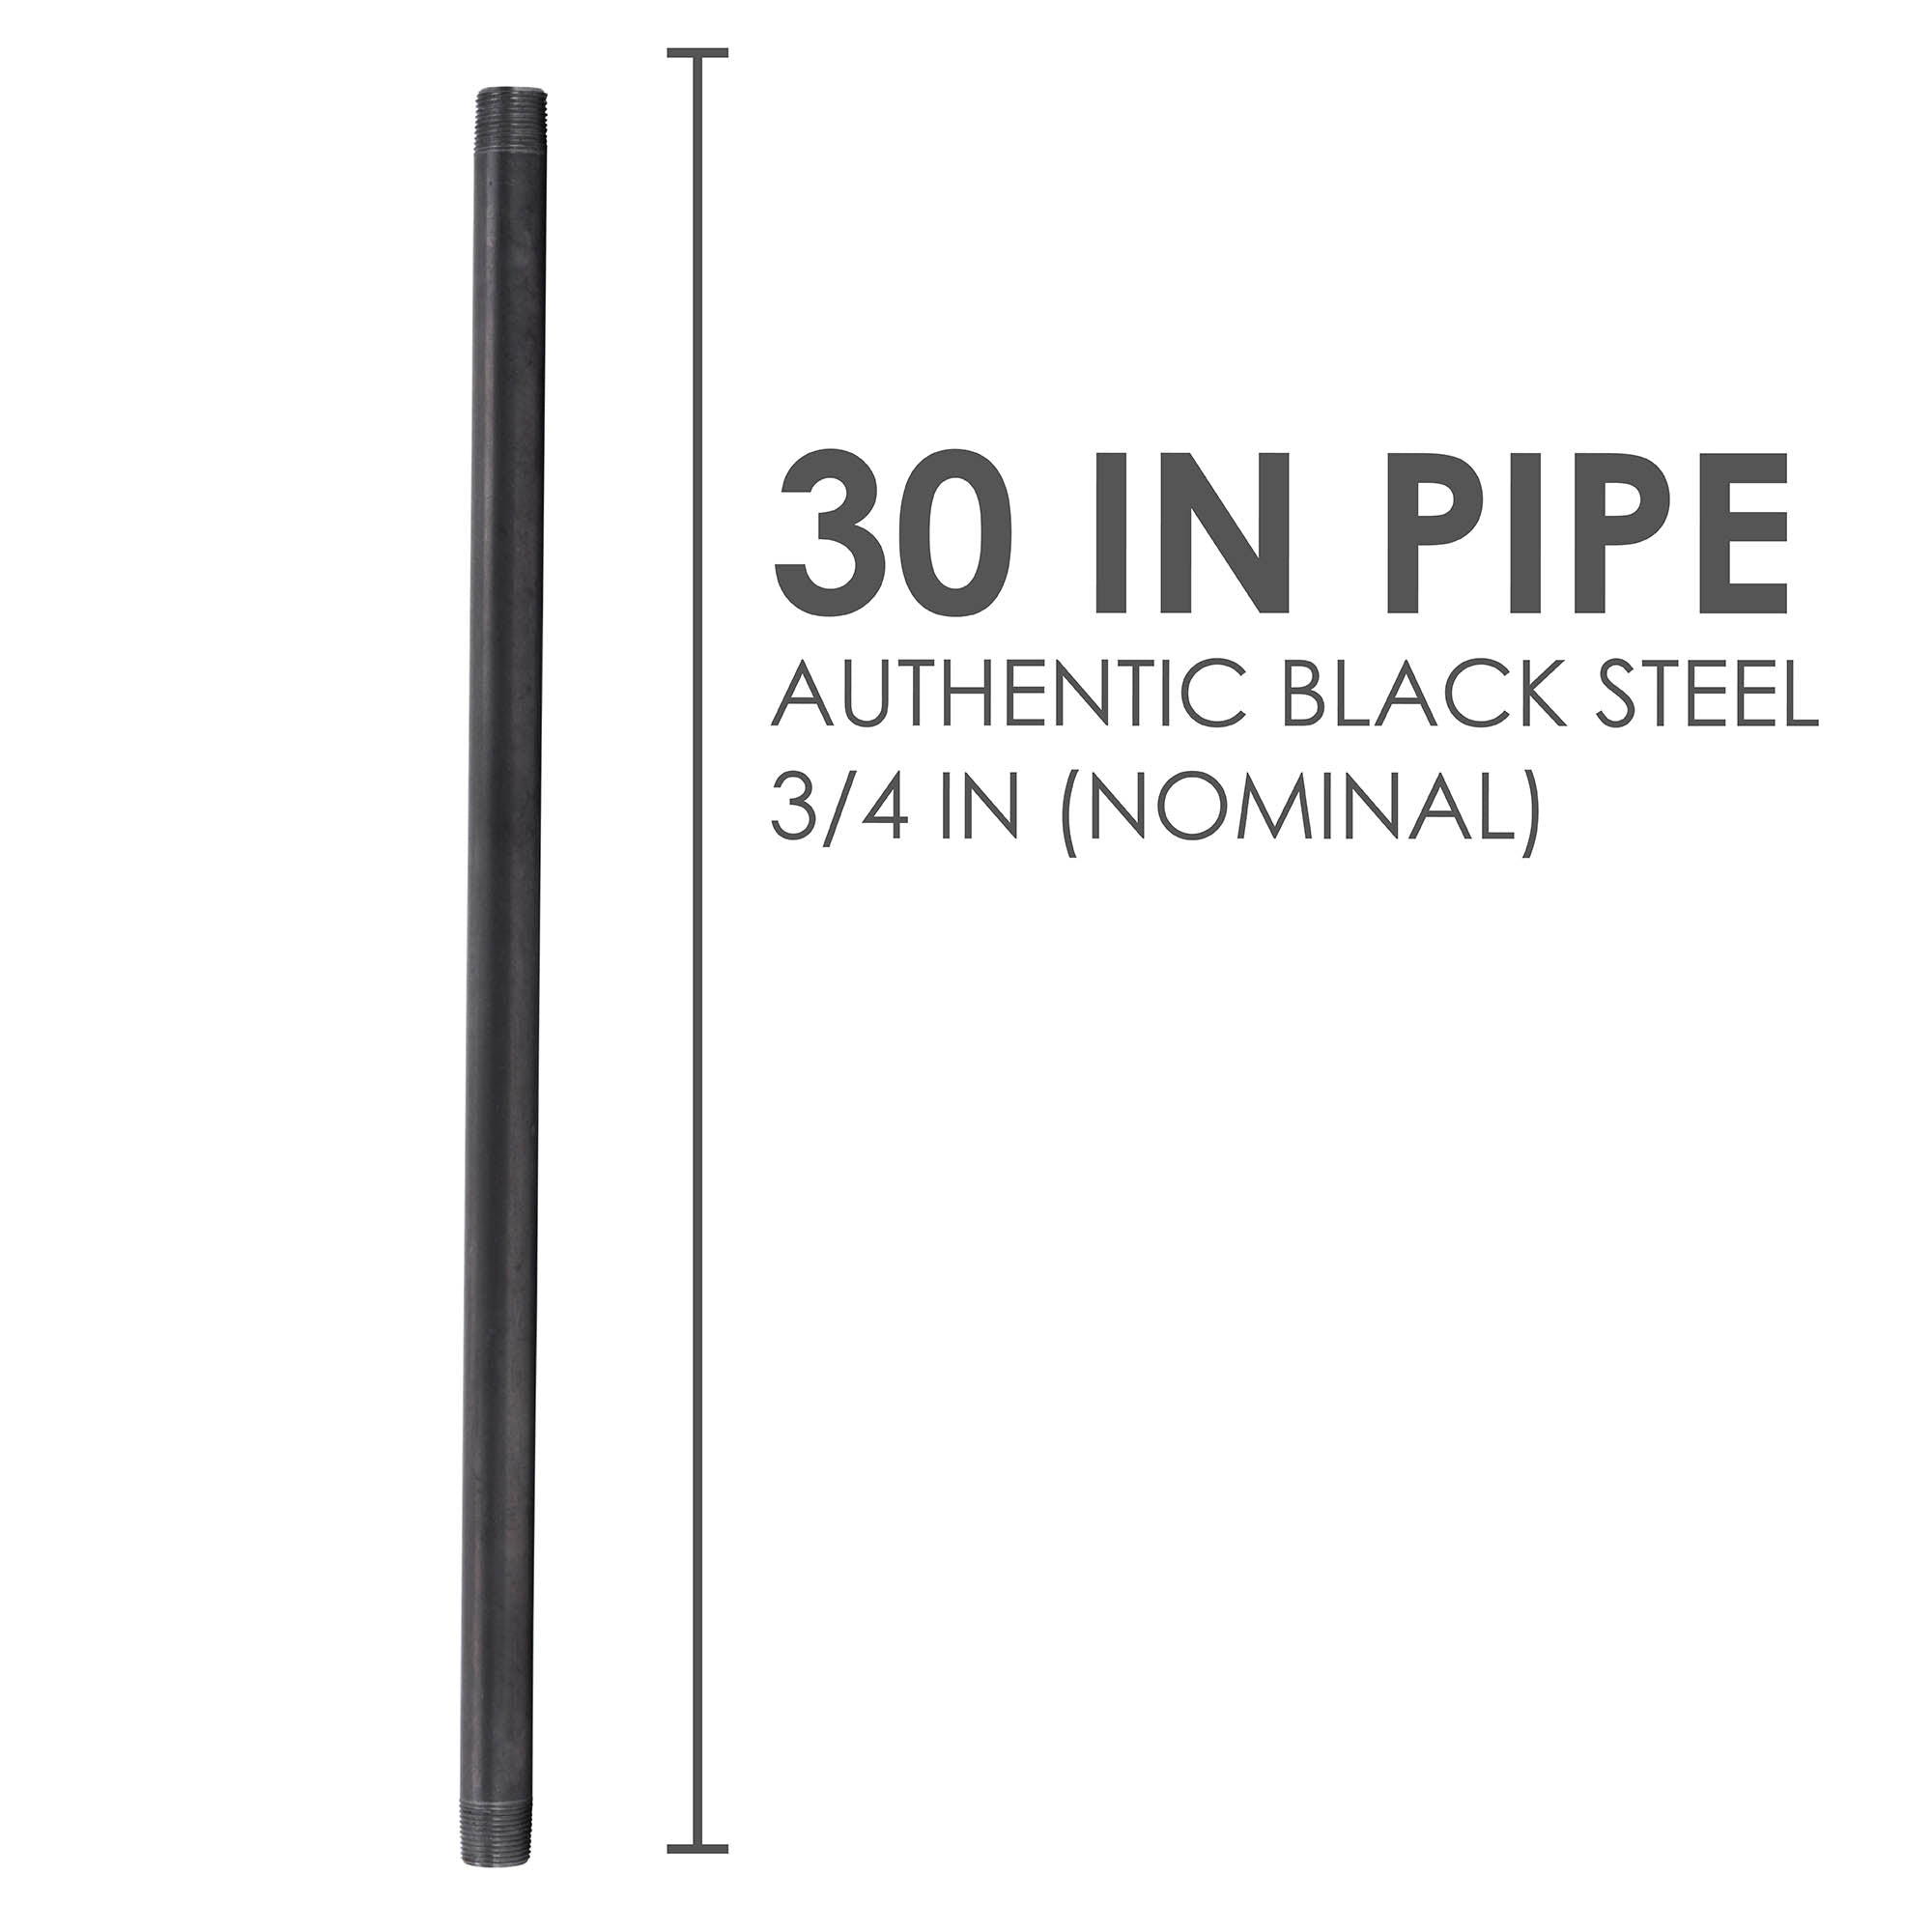 3/4 In X 30 In Black Pipe - Pipe Decor